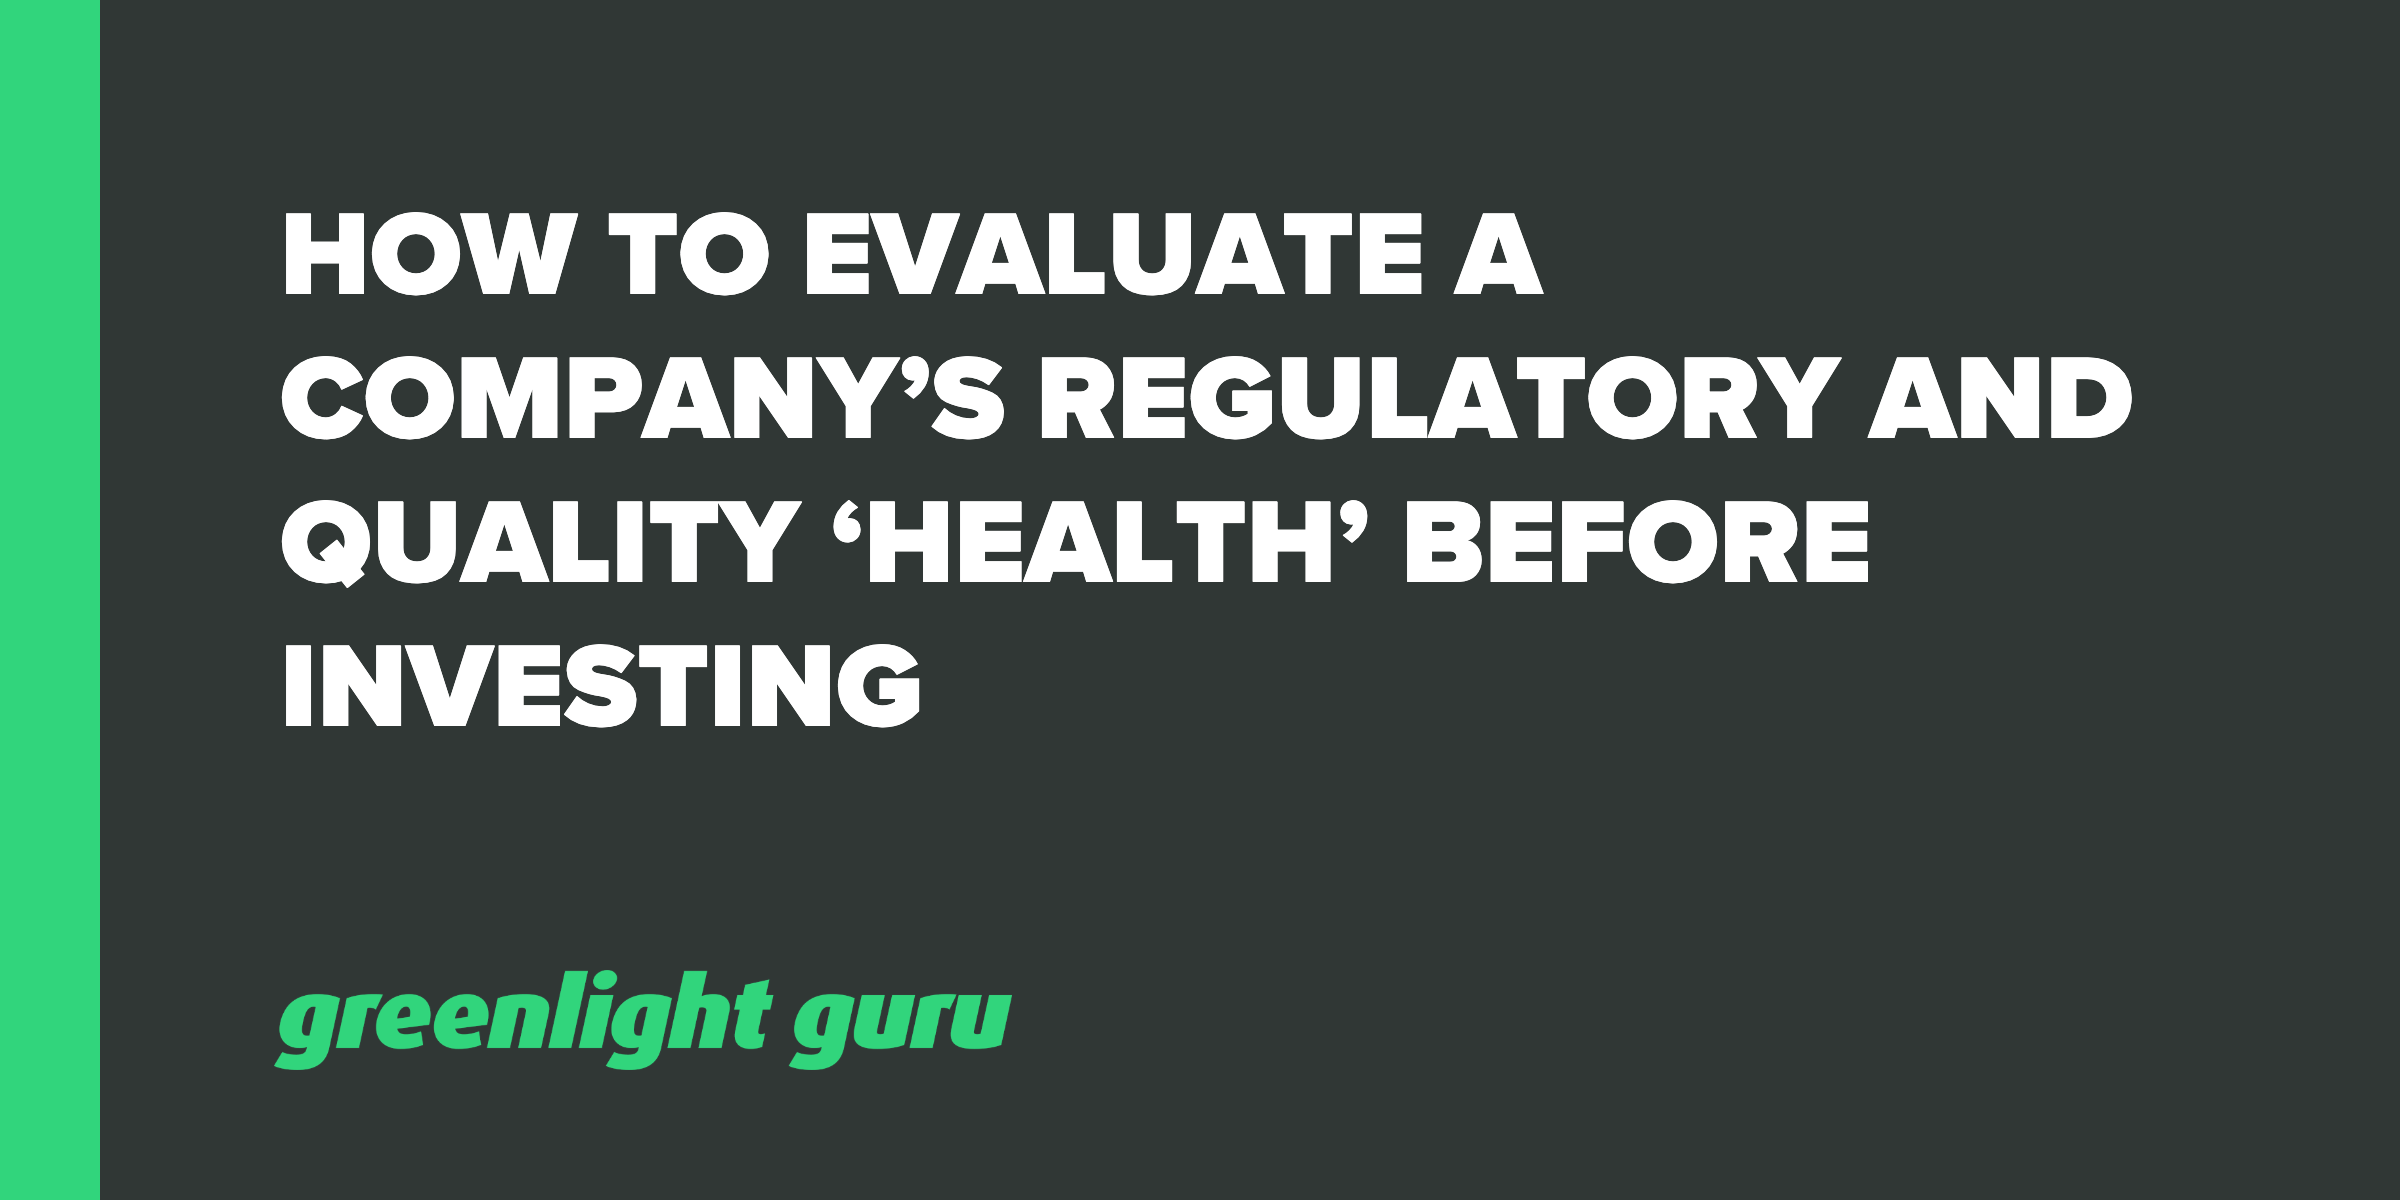 How to Evaluate a Company's Regulatory and Quality 'Health' Before Investing - Featured Image